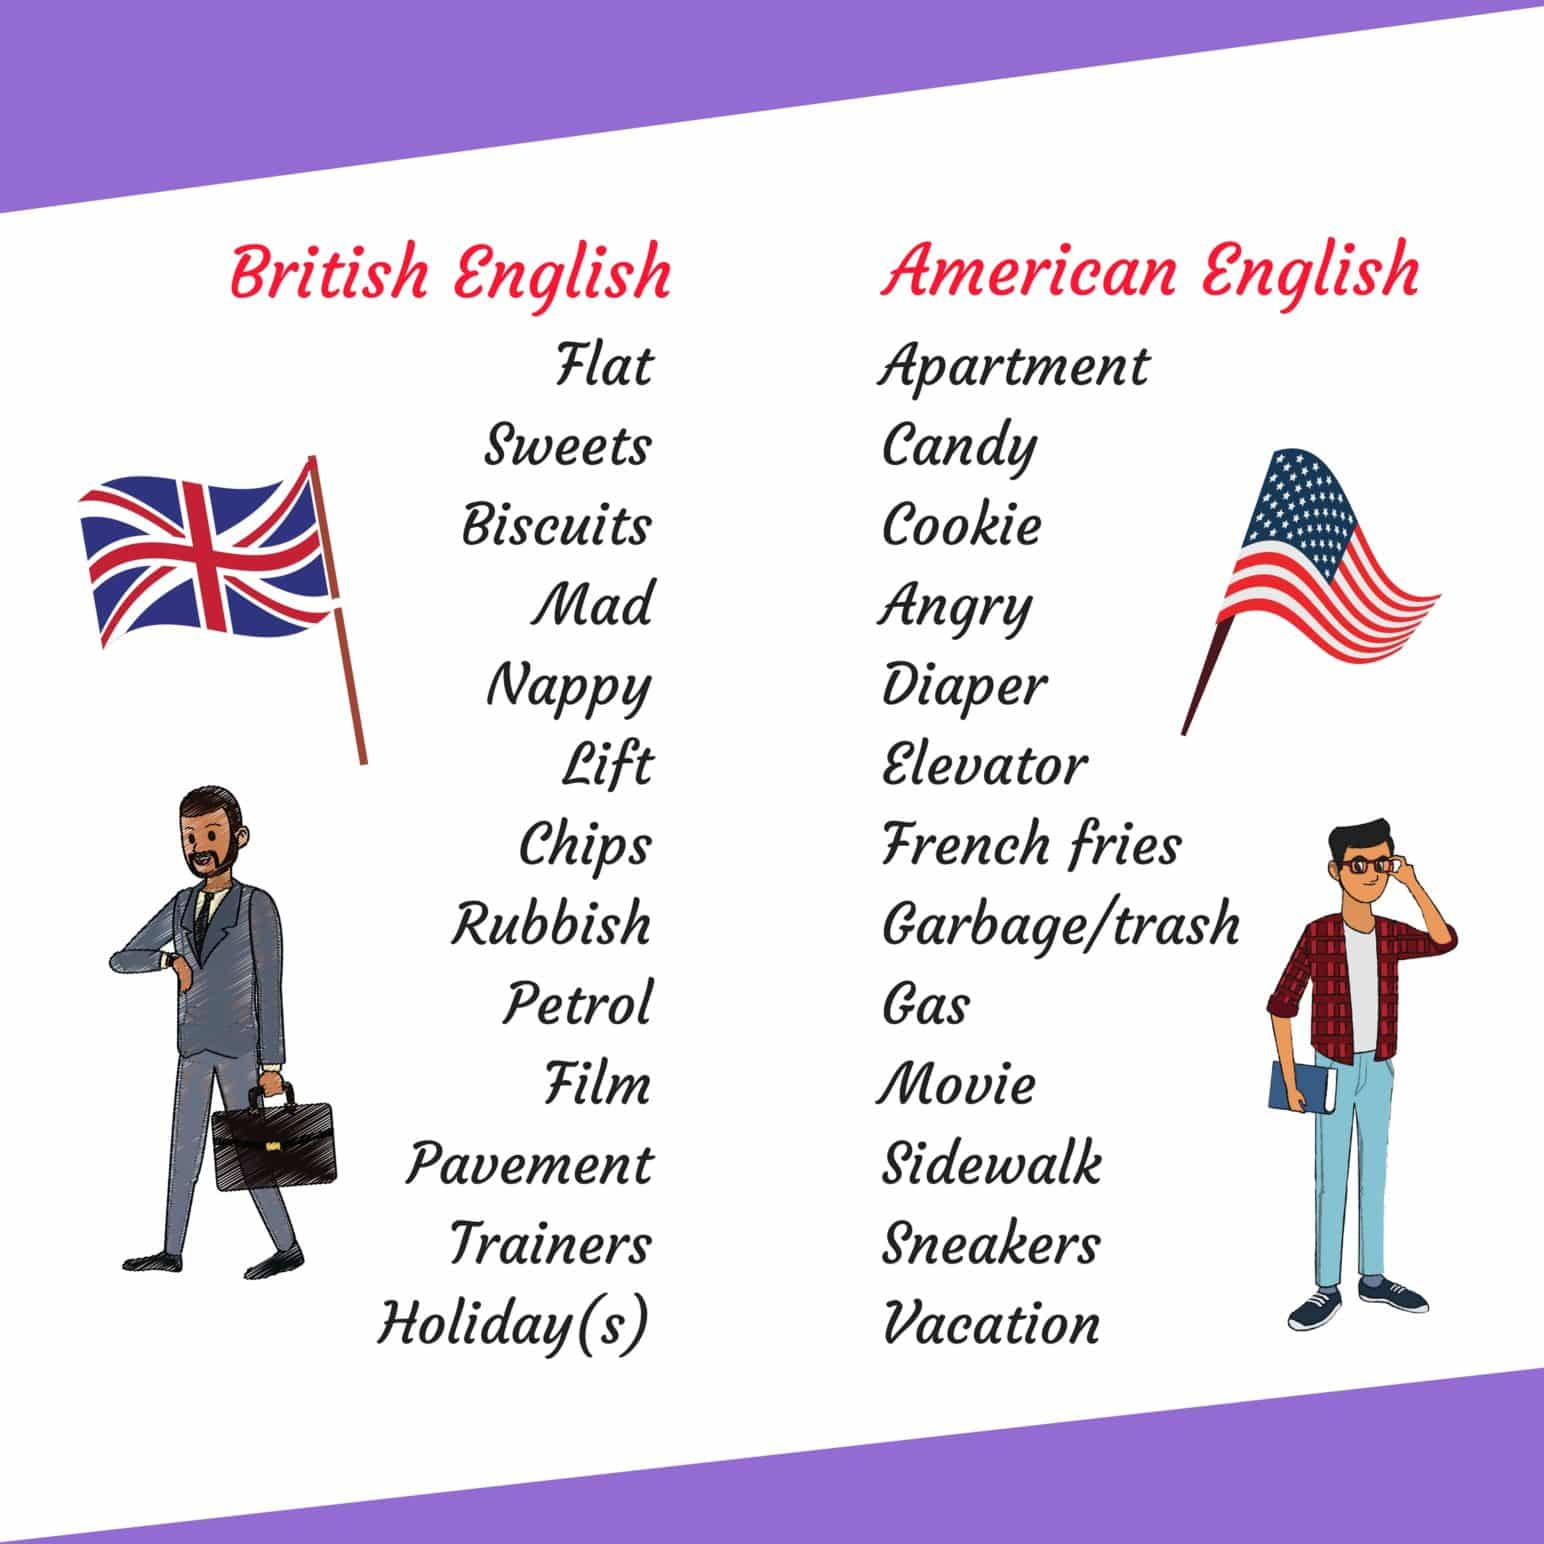 British vs American English: What are the Differences? Popular Words 3